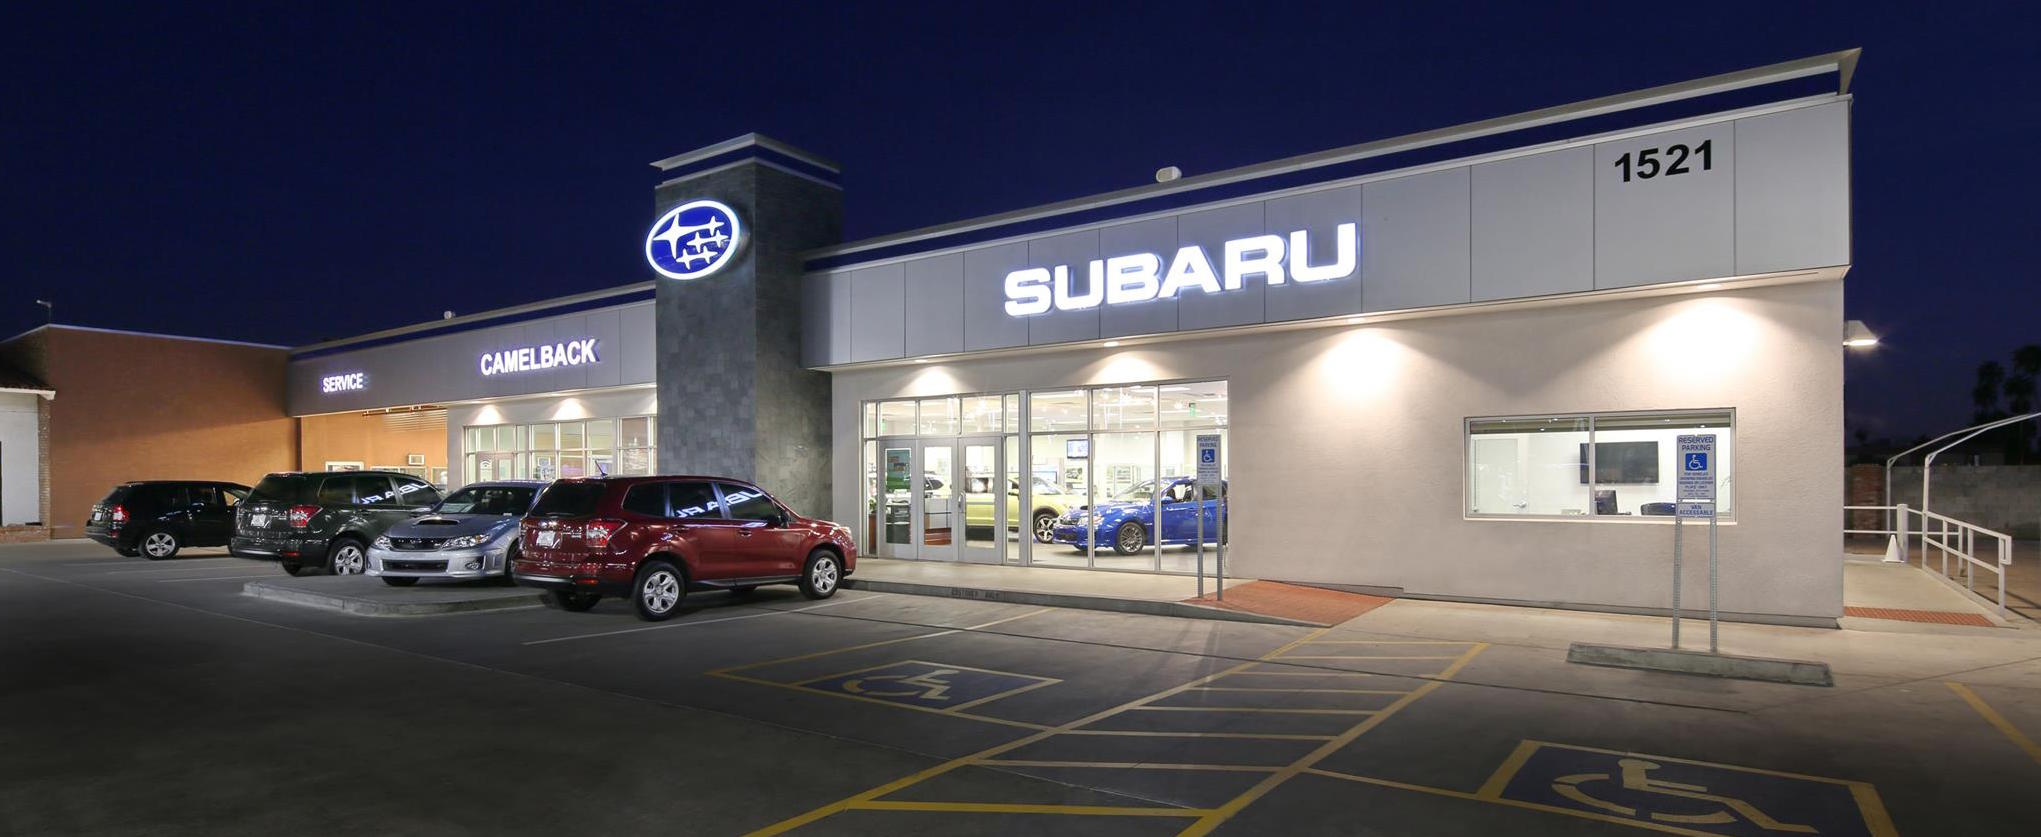 Camelback Subaru Reviews Auto Repair At 1521 E Camelback